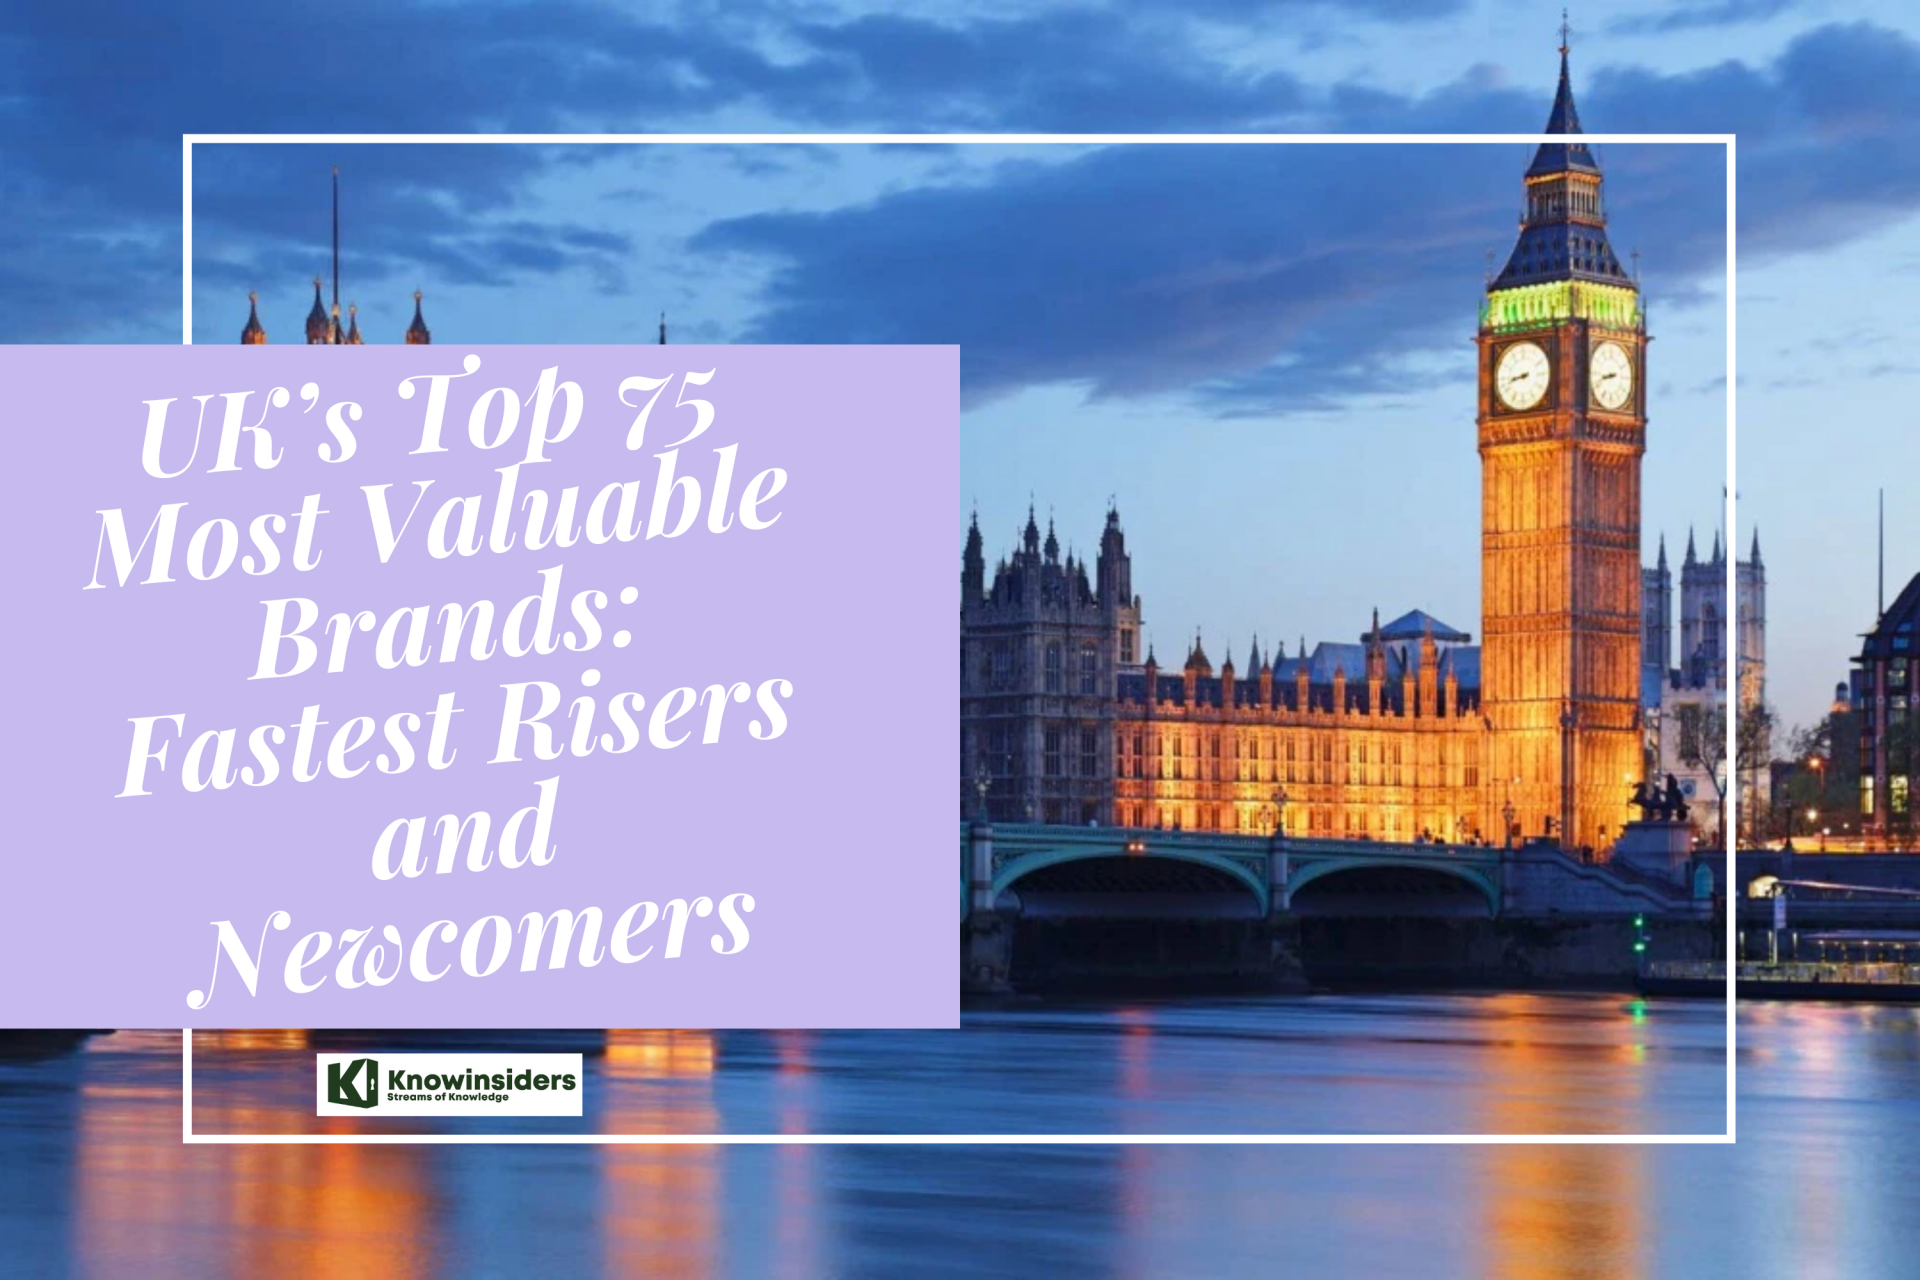 UK's Top 75 Most Valuable Brands: Fastest Risers and Newcomers